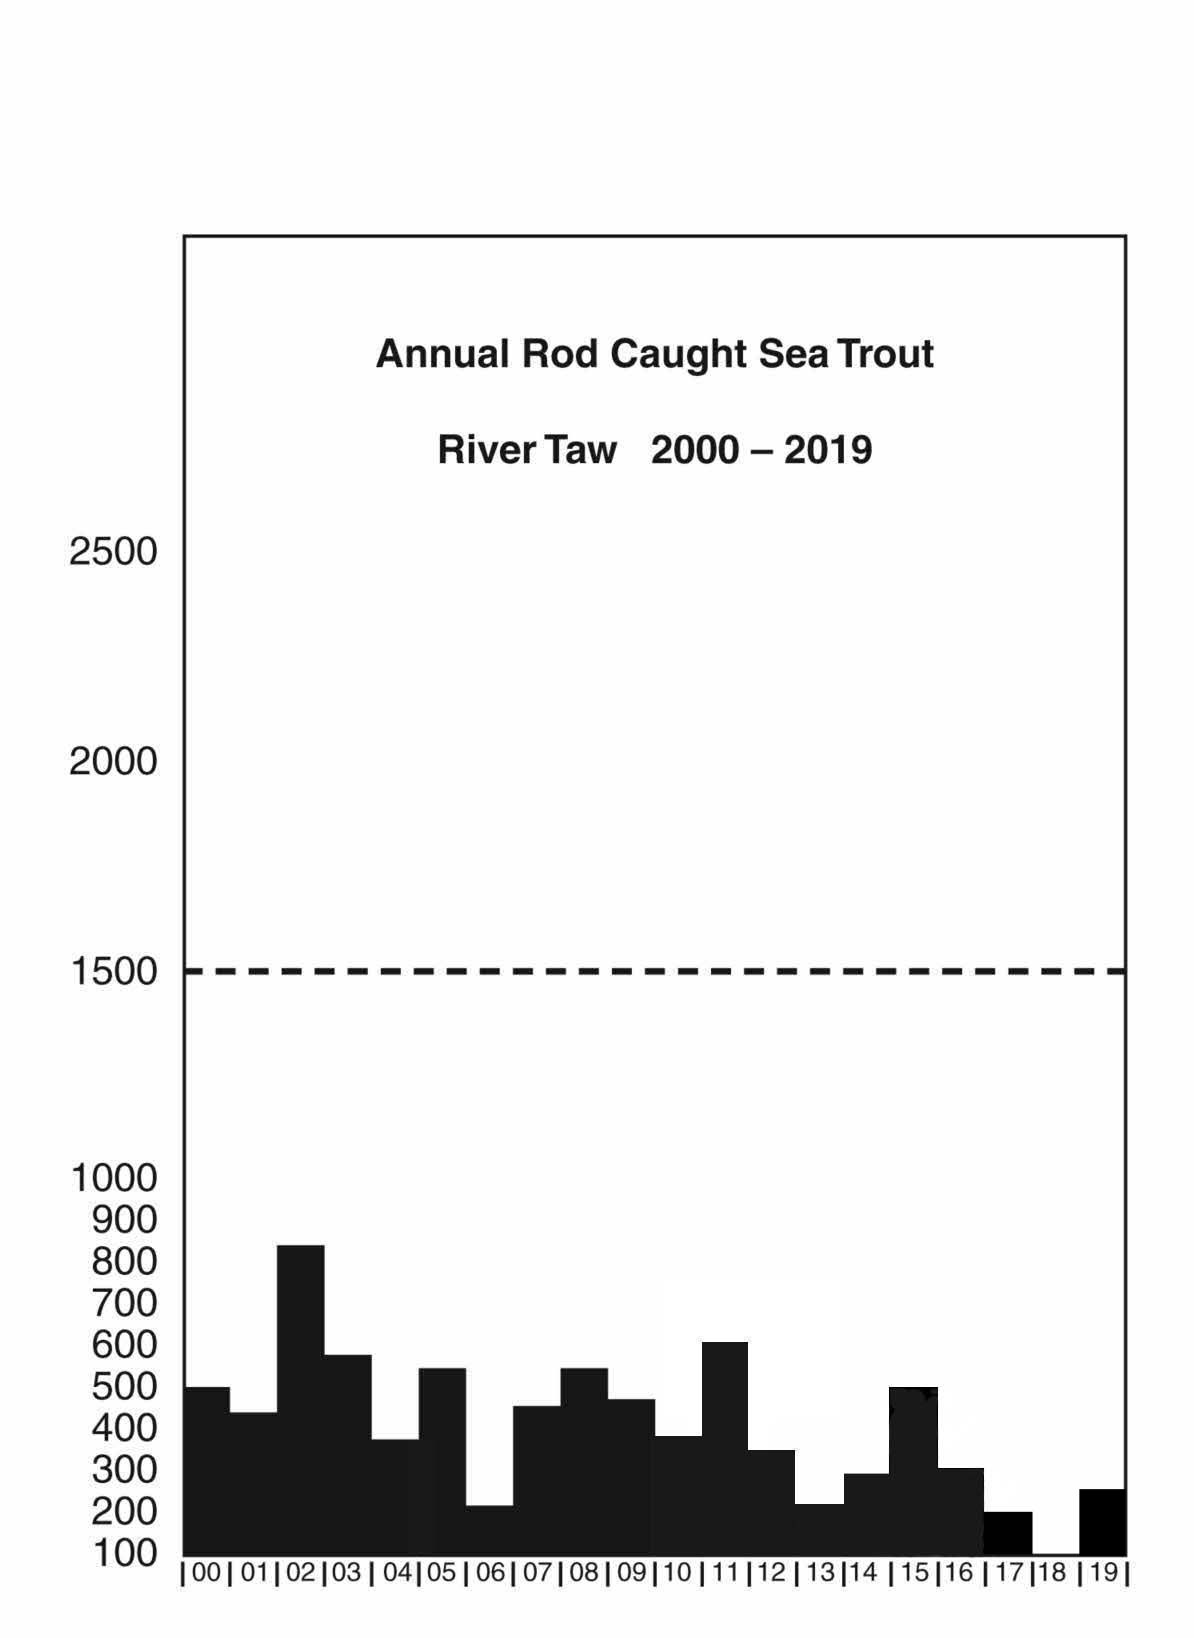 Annual Rod Caught Sea Trout - River Taw - 2000 to 2019